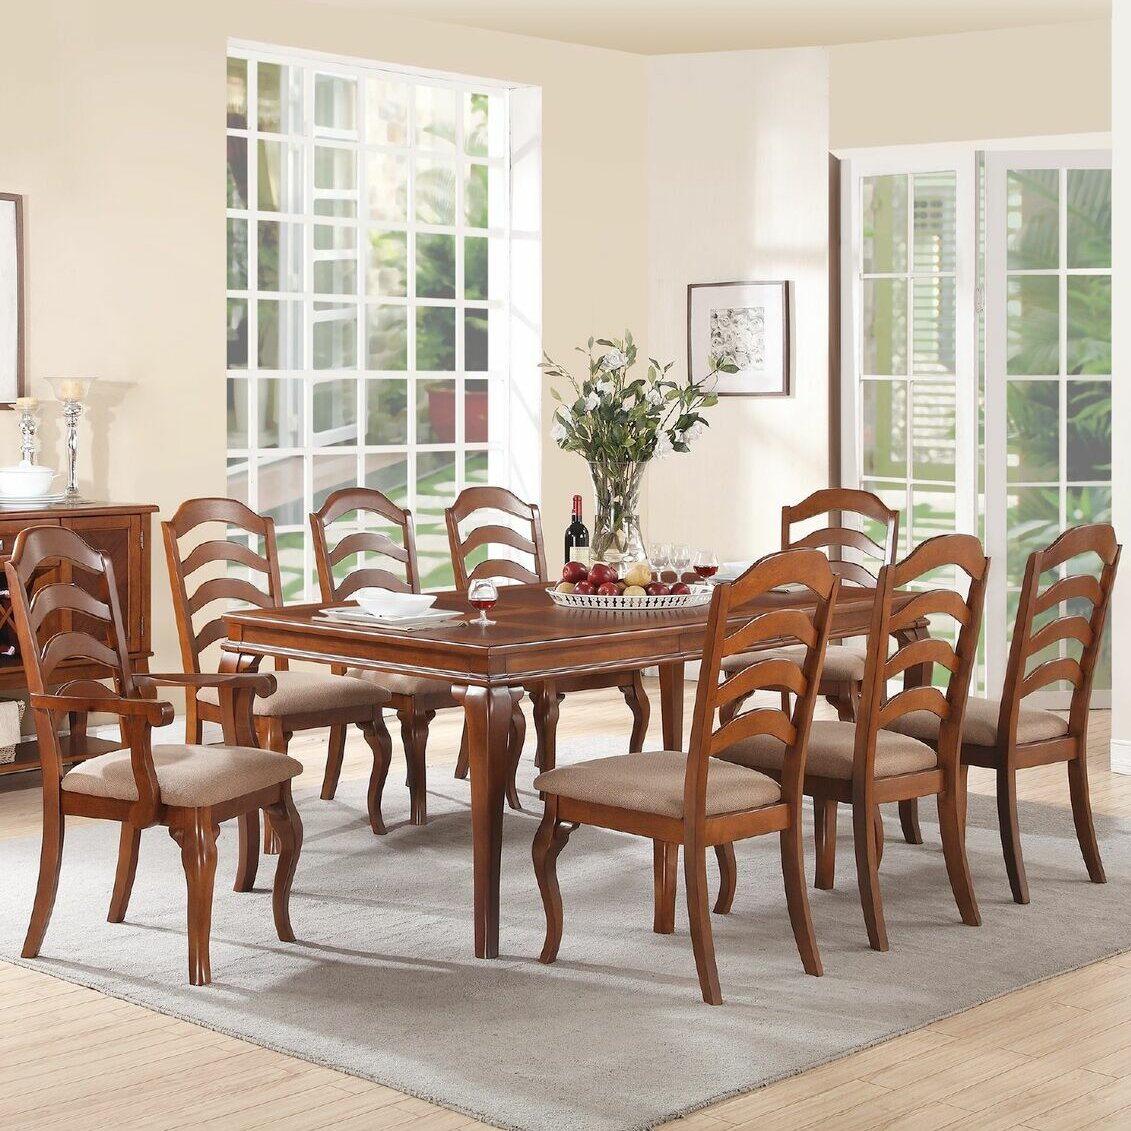 beautiful 9 piece dining room sets gallery ltrevents com